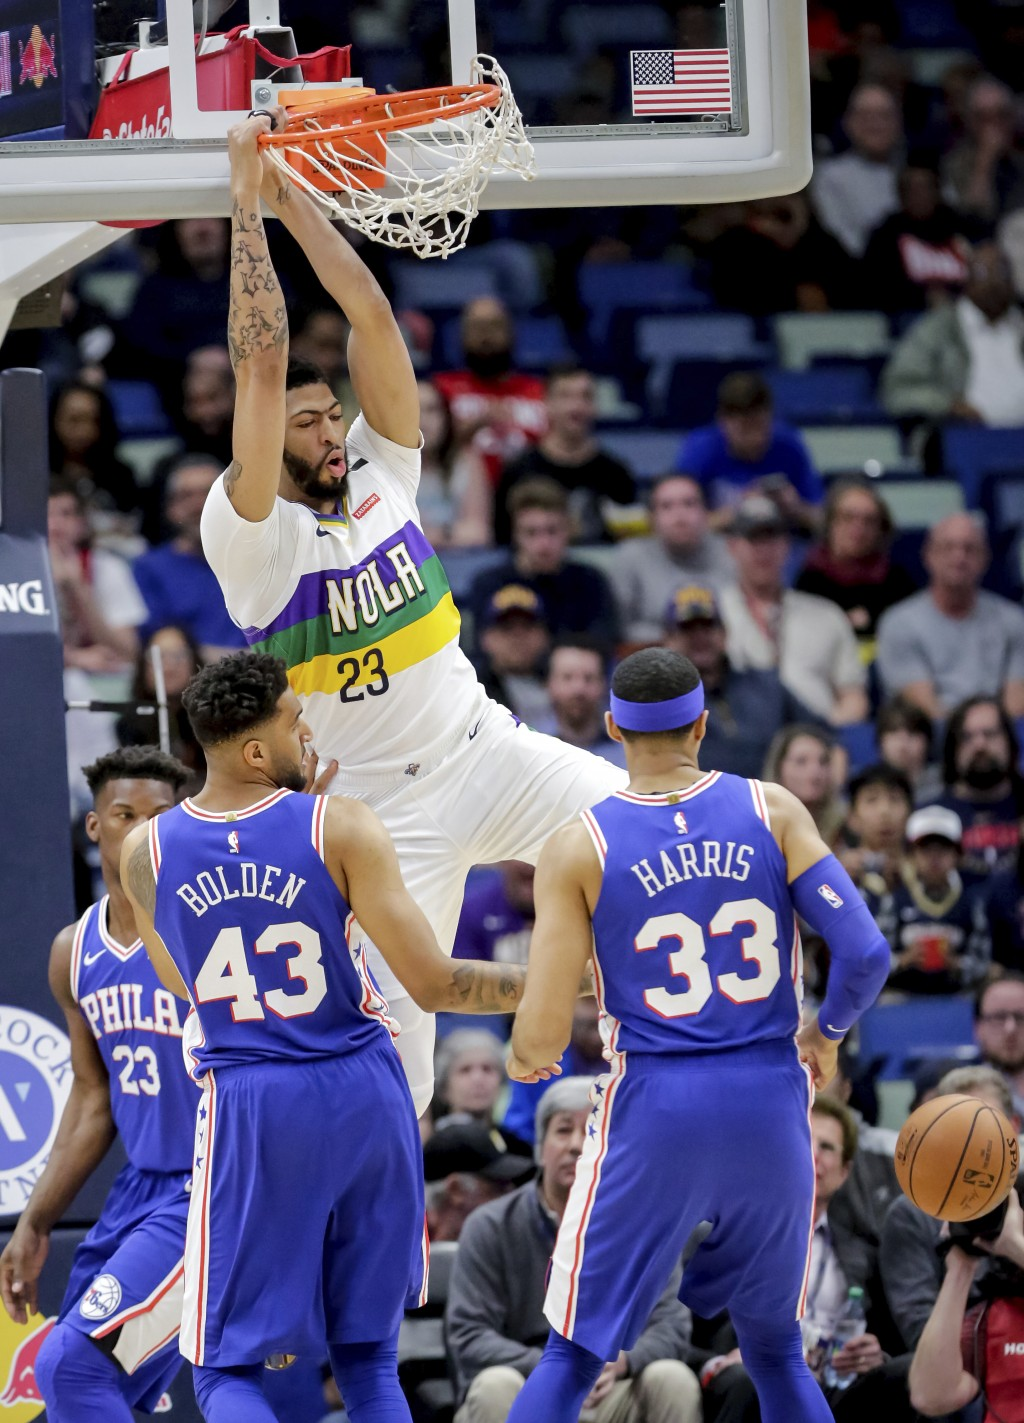 New Orleans Pelicans forward Anthony Davis (23) dunks as Philadelphia 76ers forward Jonah Bolden (43) and Philadelphia 76ers forward Tobias Harris (33